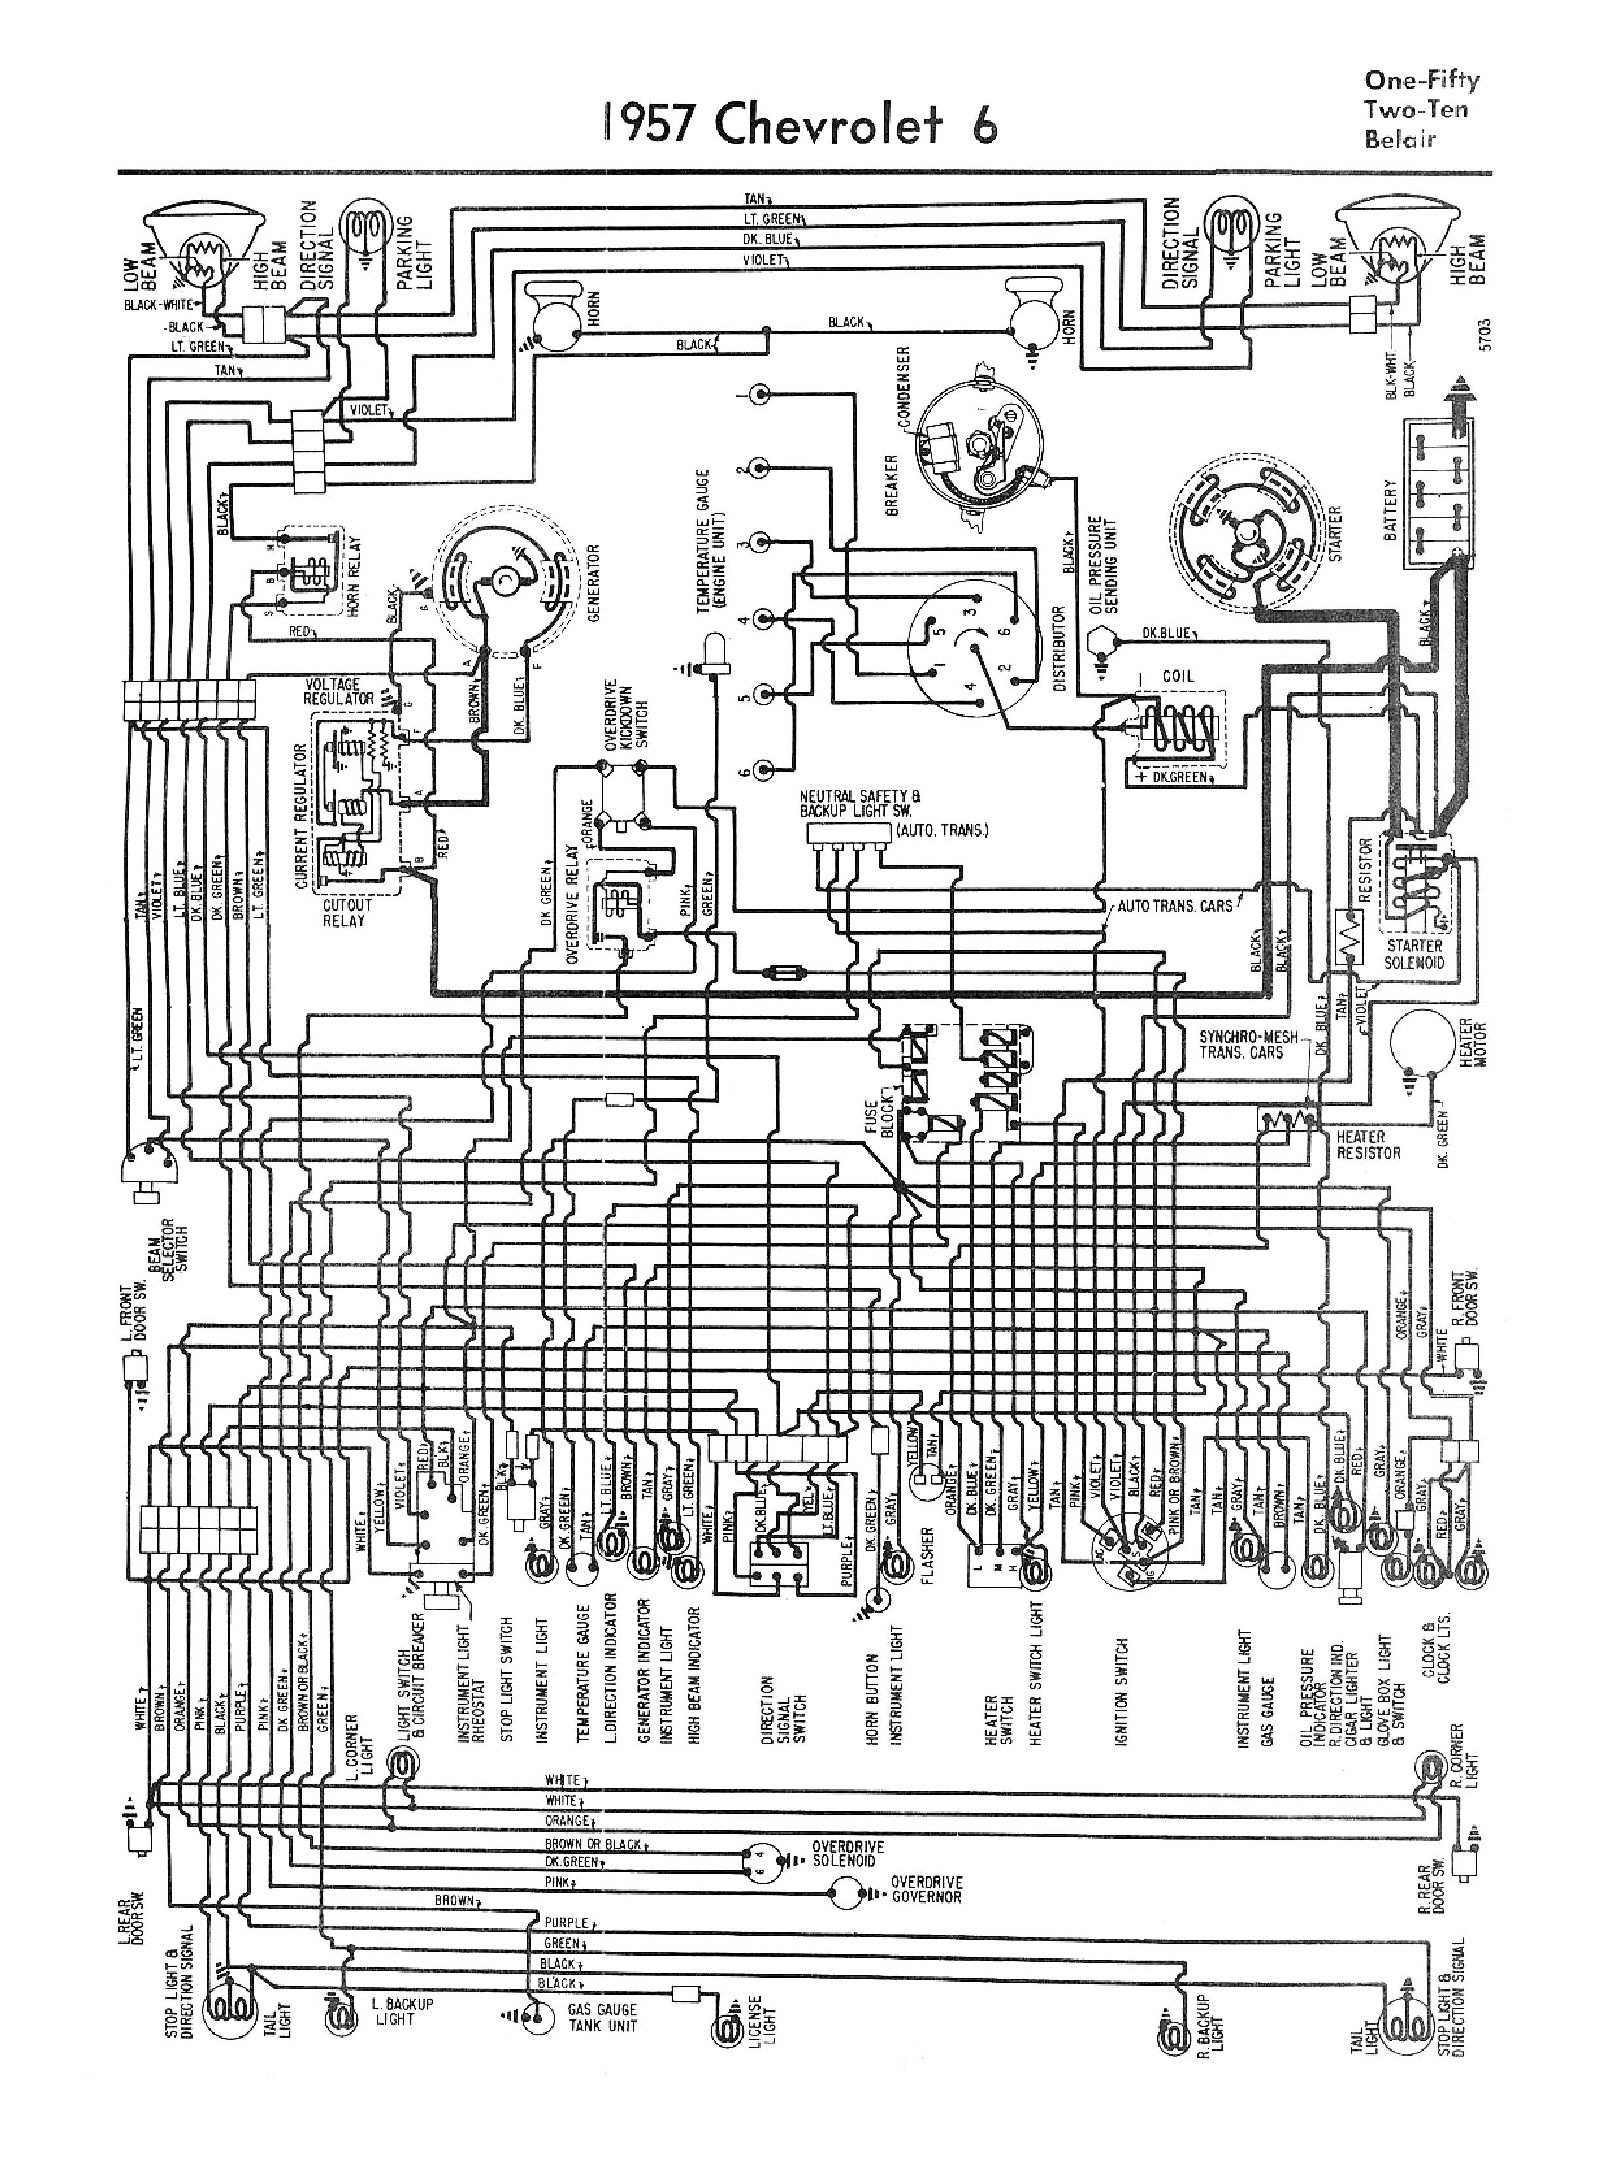 V on 57 Chevy Dash Wiring Diagram